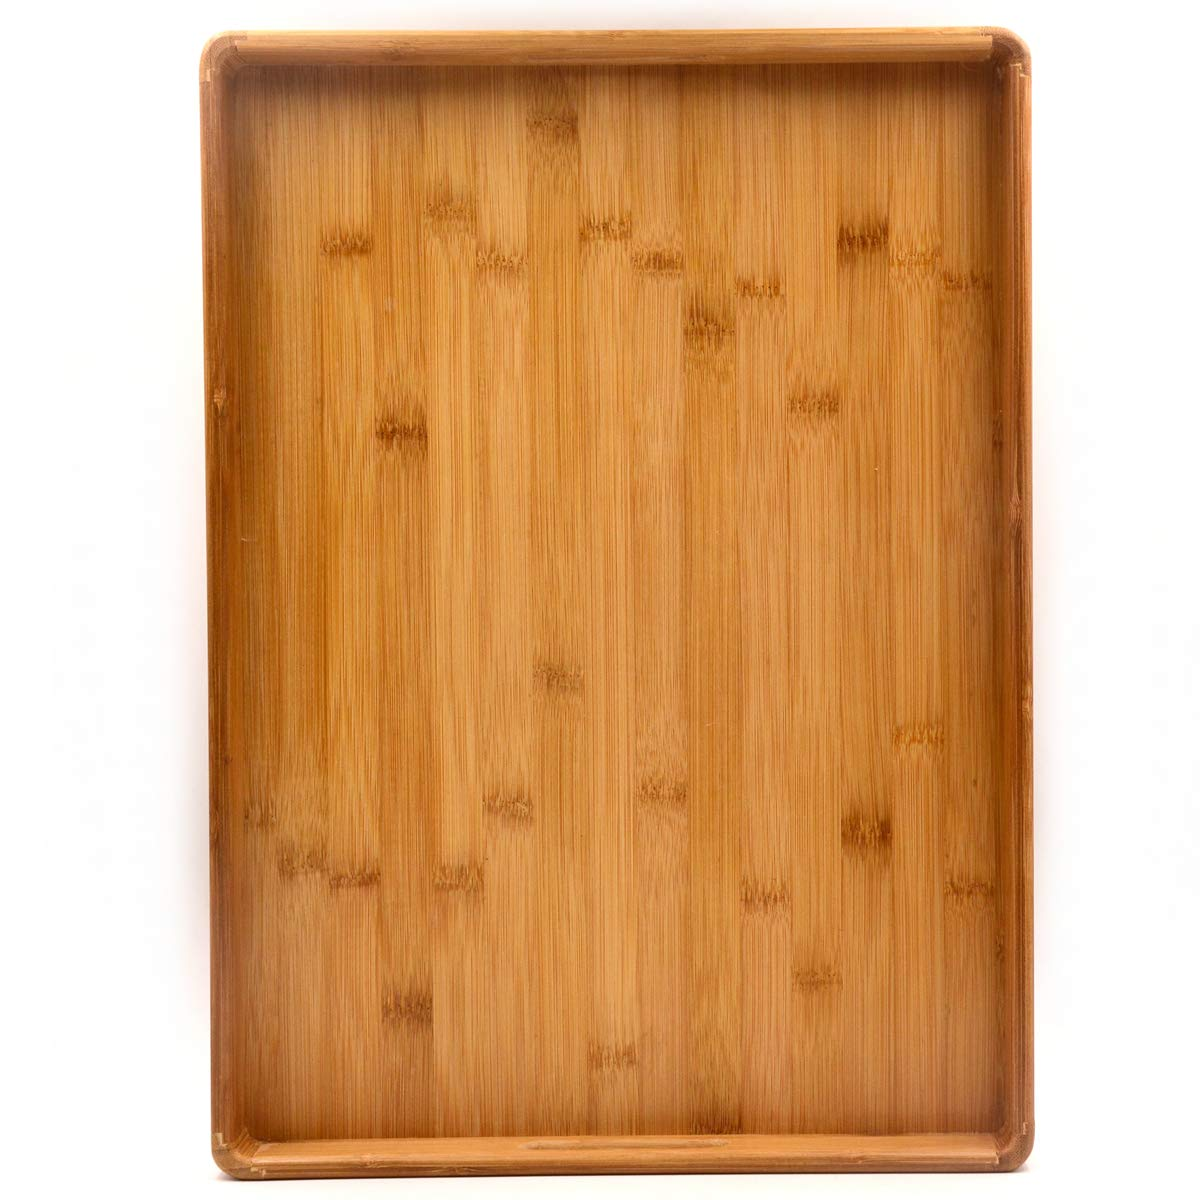 Bamber Extra Large Bamboo Serving Tray, Rectangular, 20 x 12.8 x 2 Inches